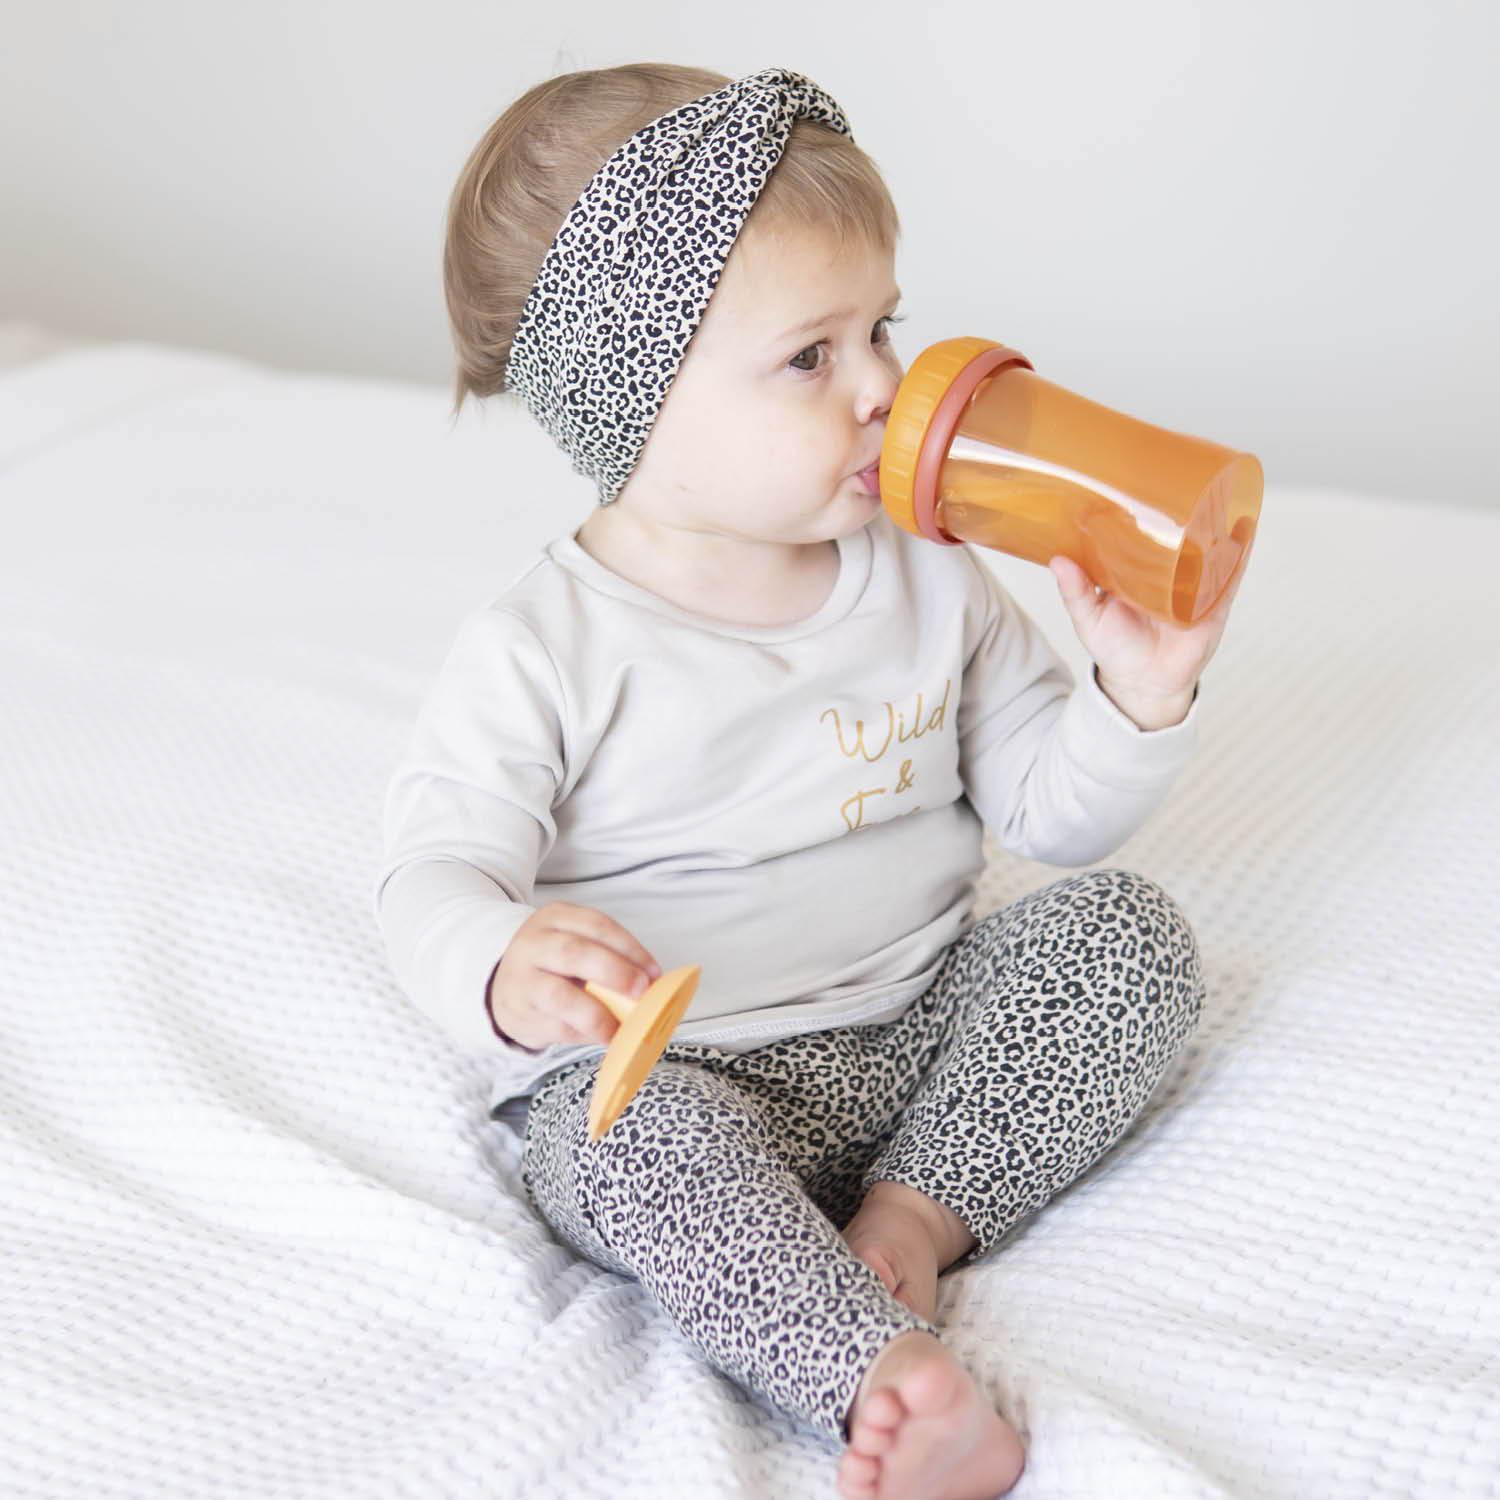 Cup with straw